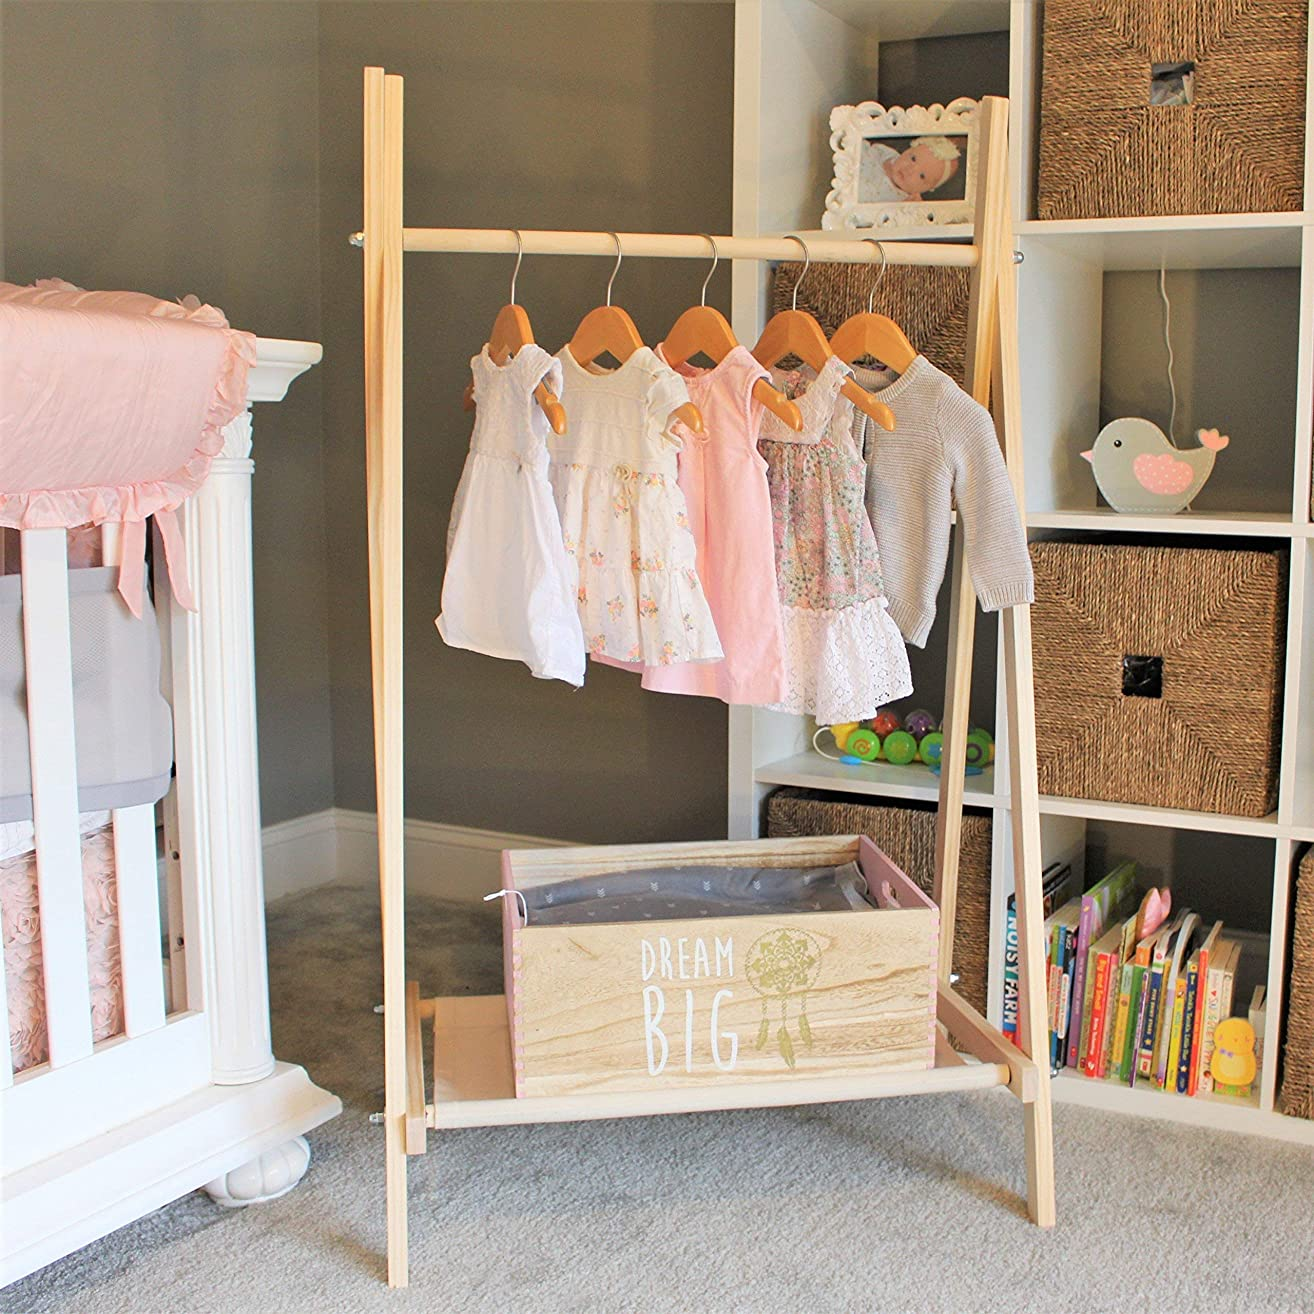 Clothing Rack, Kids Room Decor, Nursery Organization, Kids Clothes Storage, FOLDS UP, 48x26 inch Tall Clothes Rack with Fabric Storage Shelf